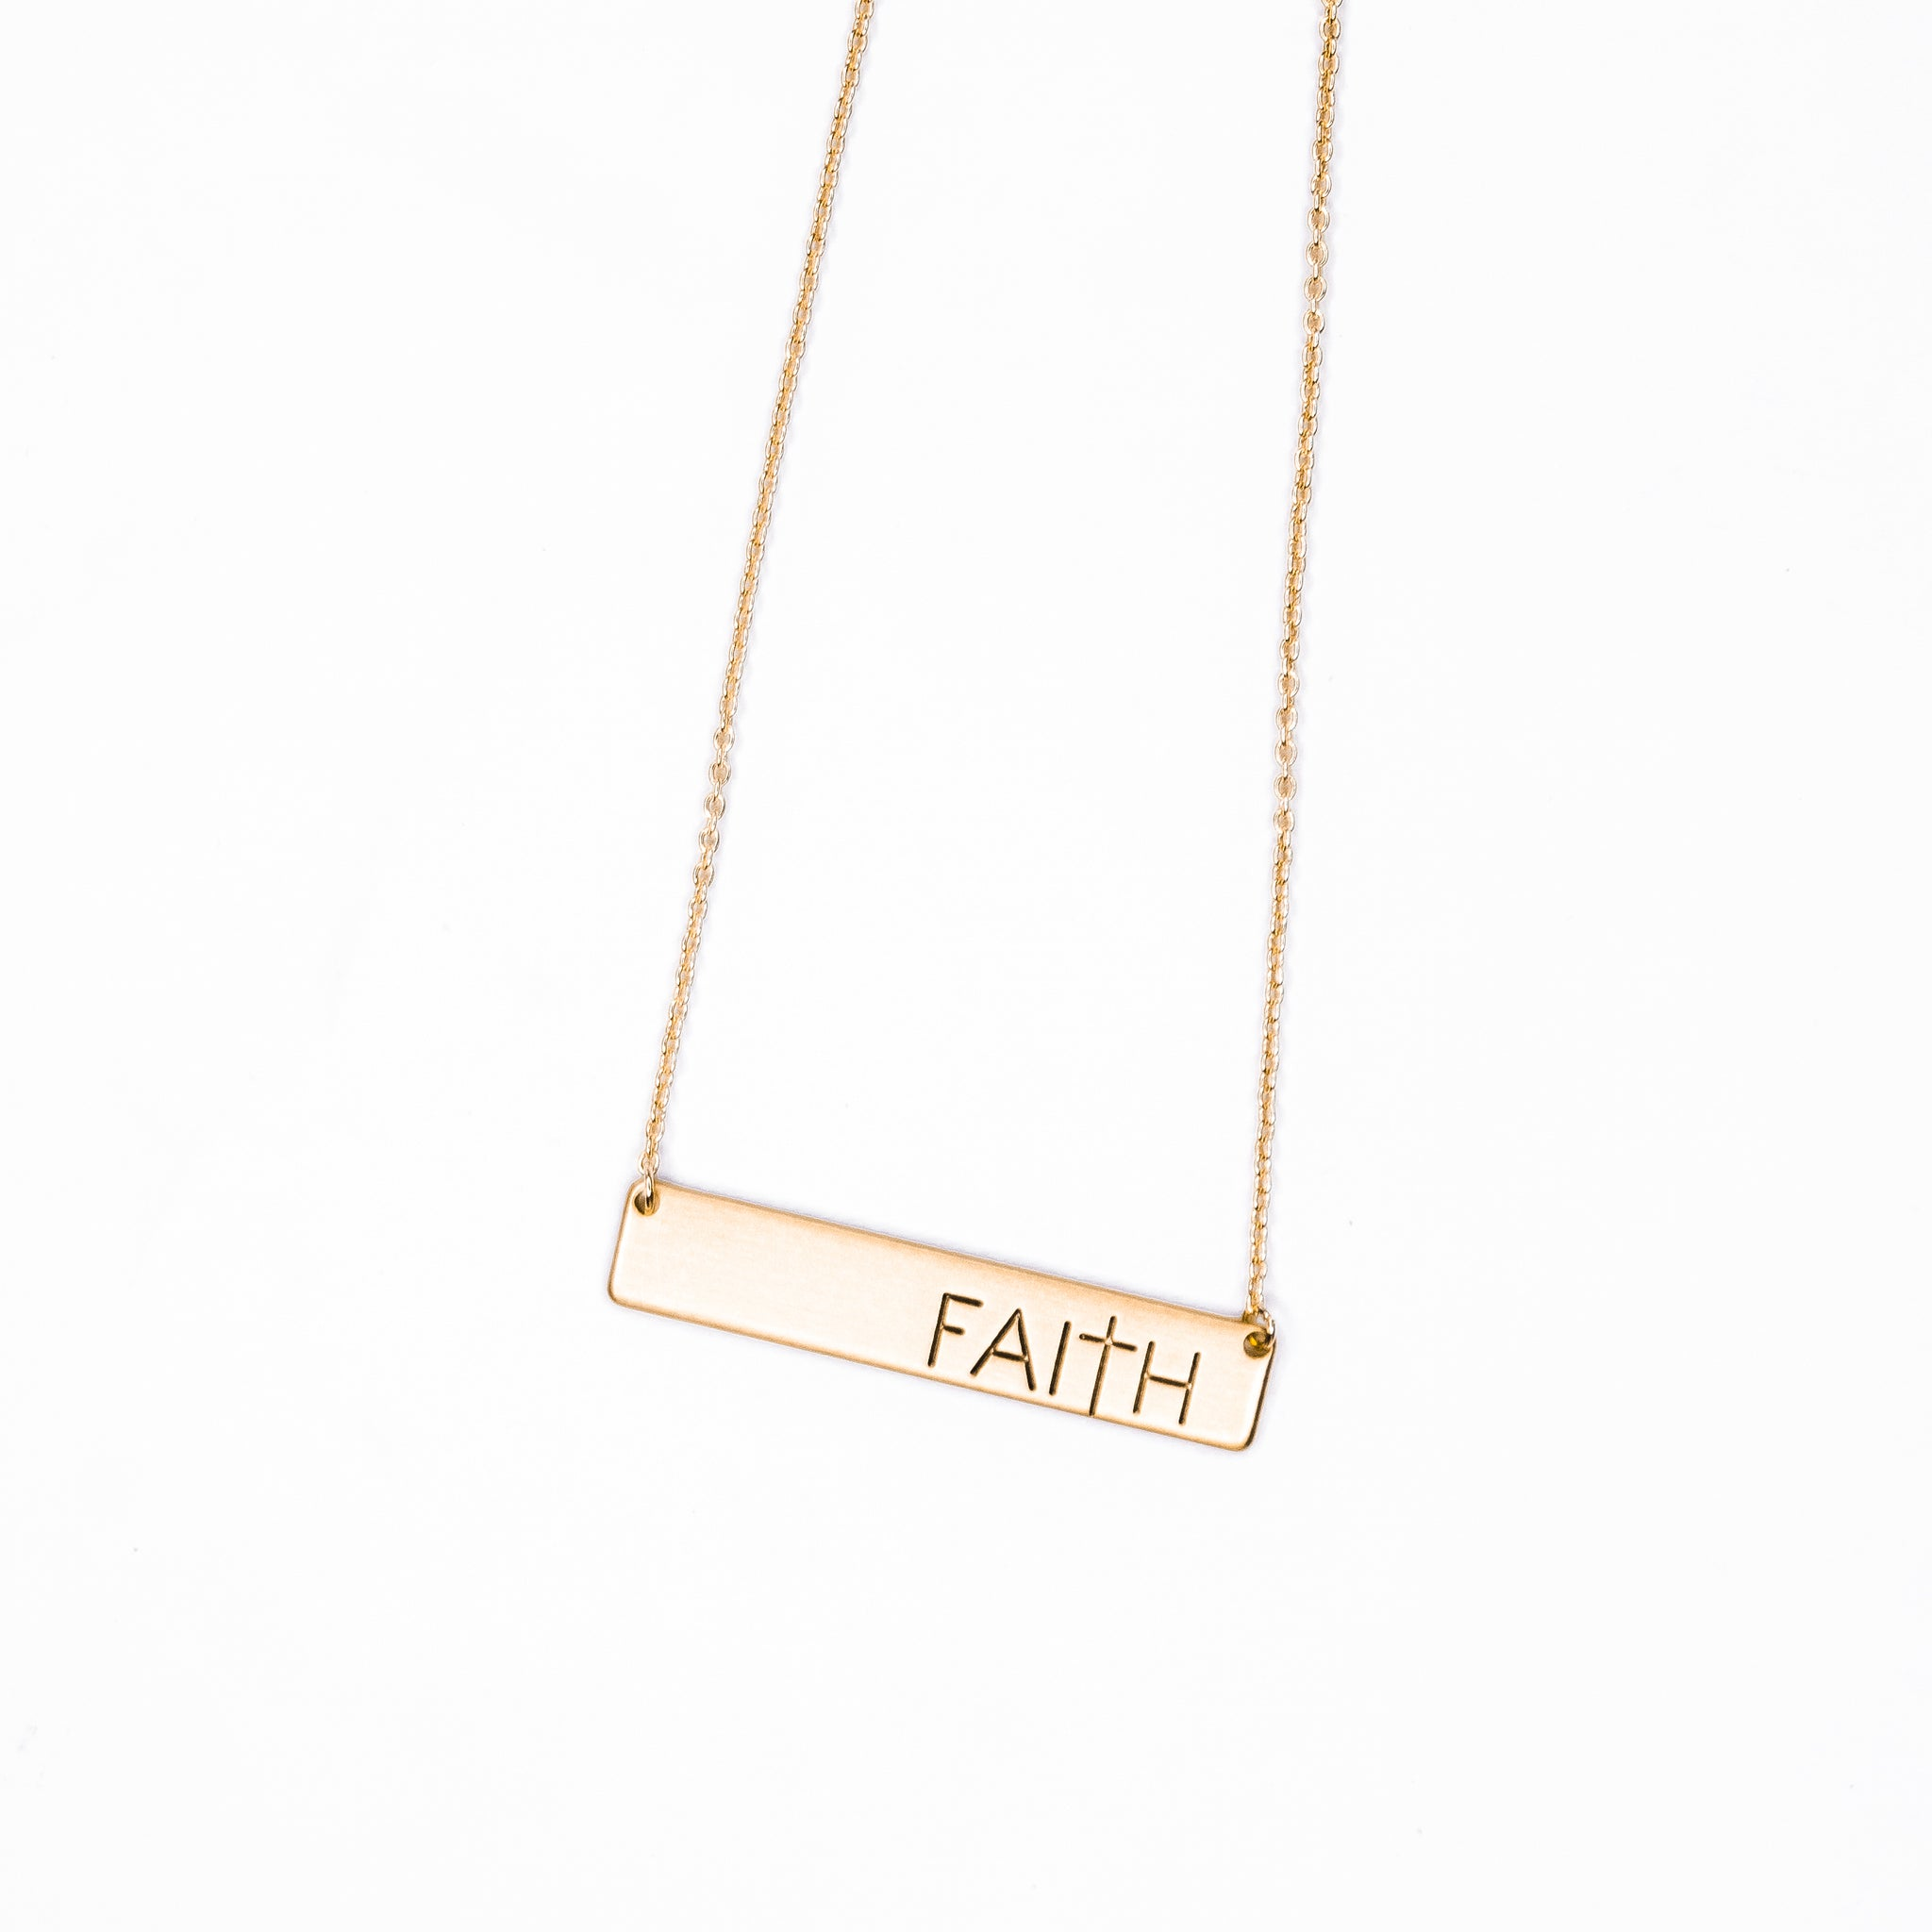 Faith Gold Plate Necklace